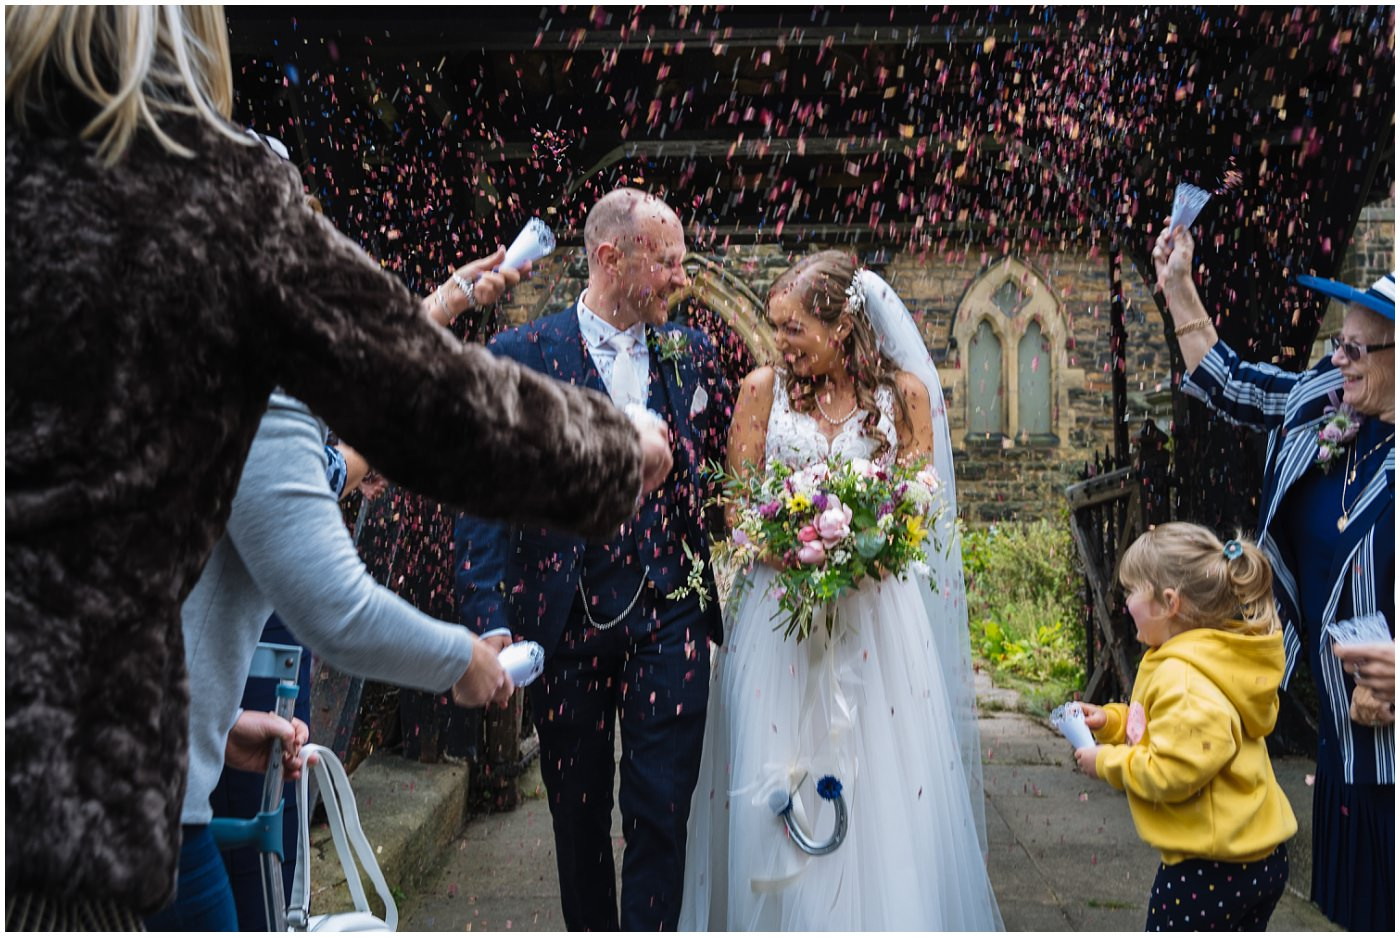 Confetti on bride and groom at Shireburn Arms Wedding